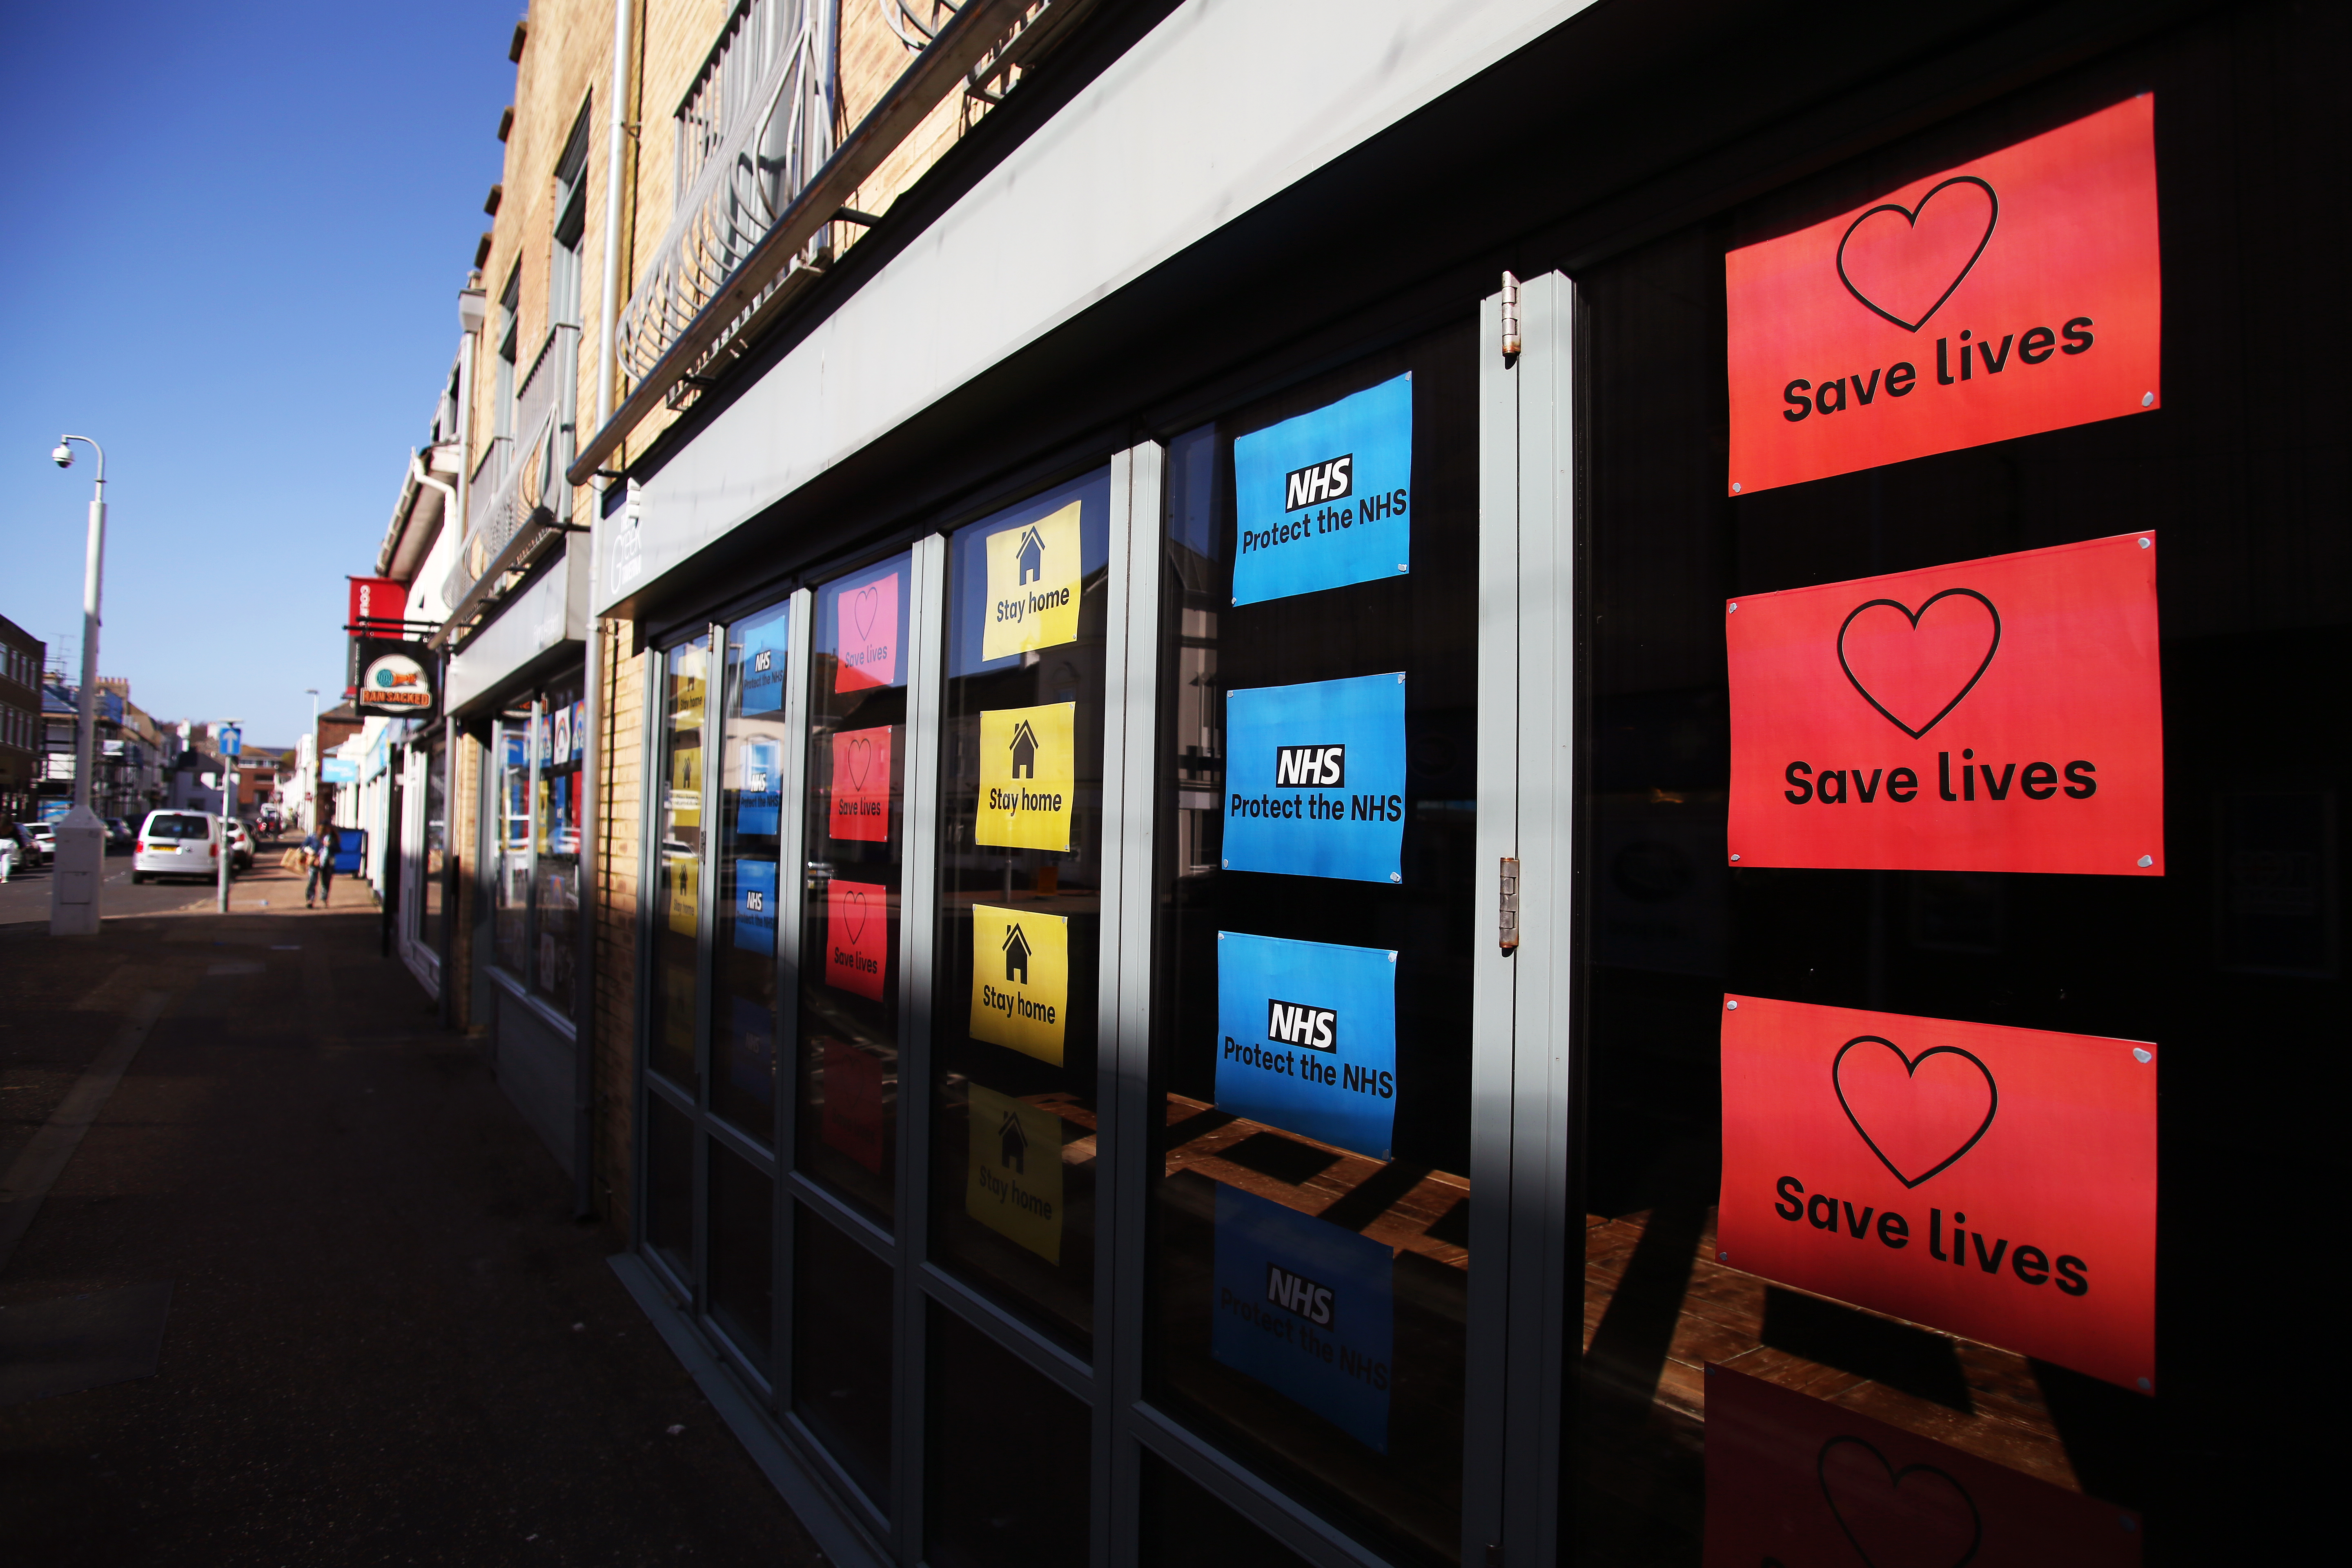 Colourful signs in a shop window say 'stay home', 'protect the NHS' and 'save lives' as the UK continues in lockdown to help curb the spread of the coronavirus.